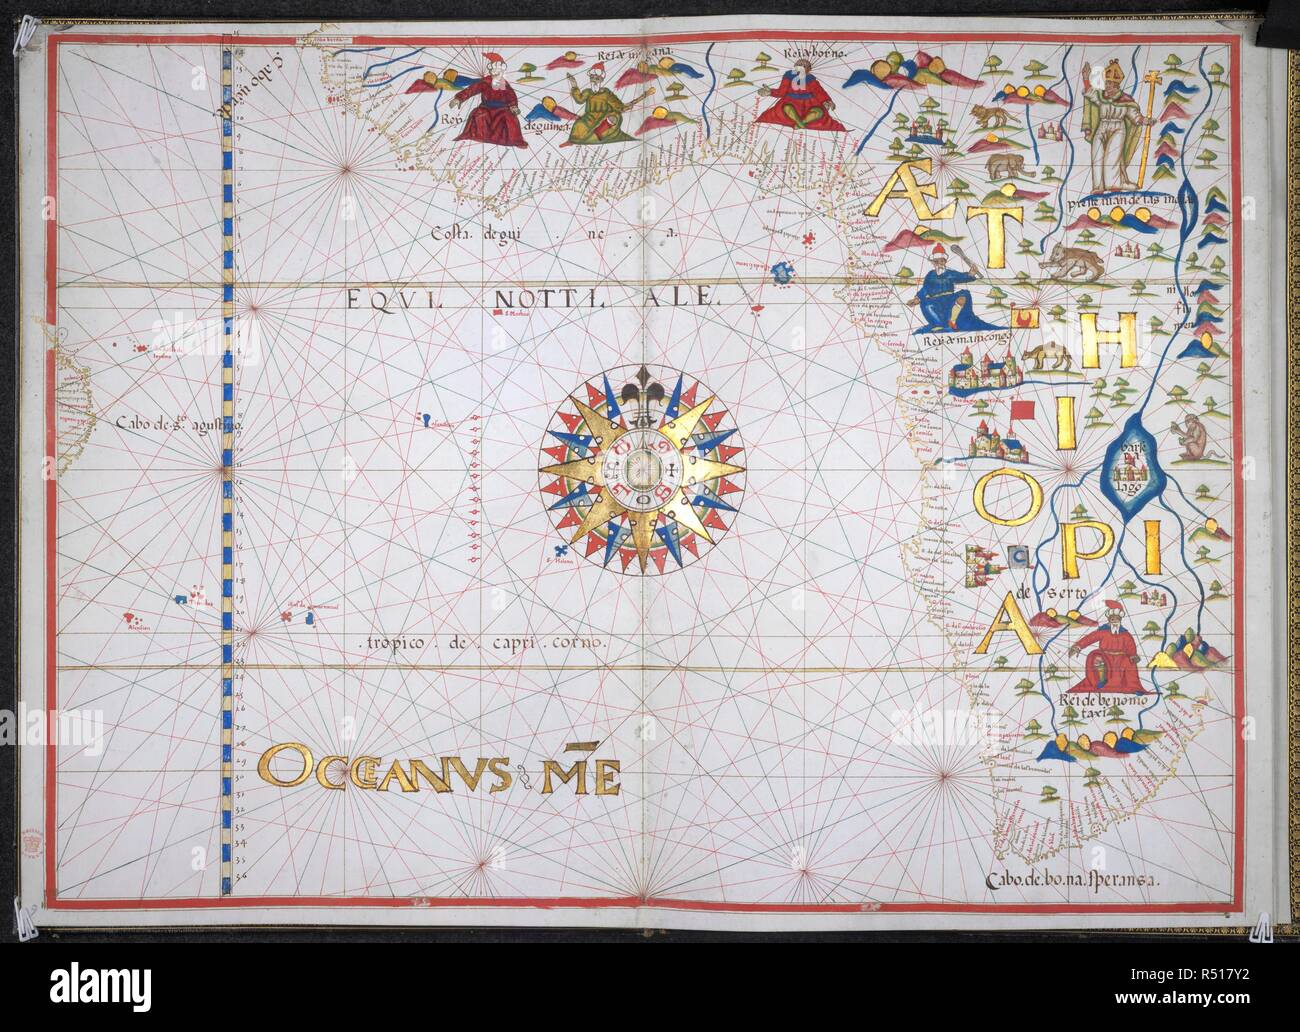 Map Of South West Coast Of Spain.West Coast Of Africa Portolano Spain Before 1600 Whole Chart